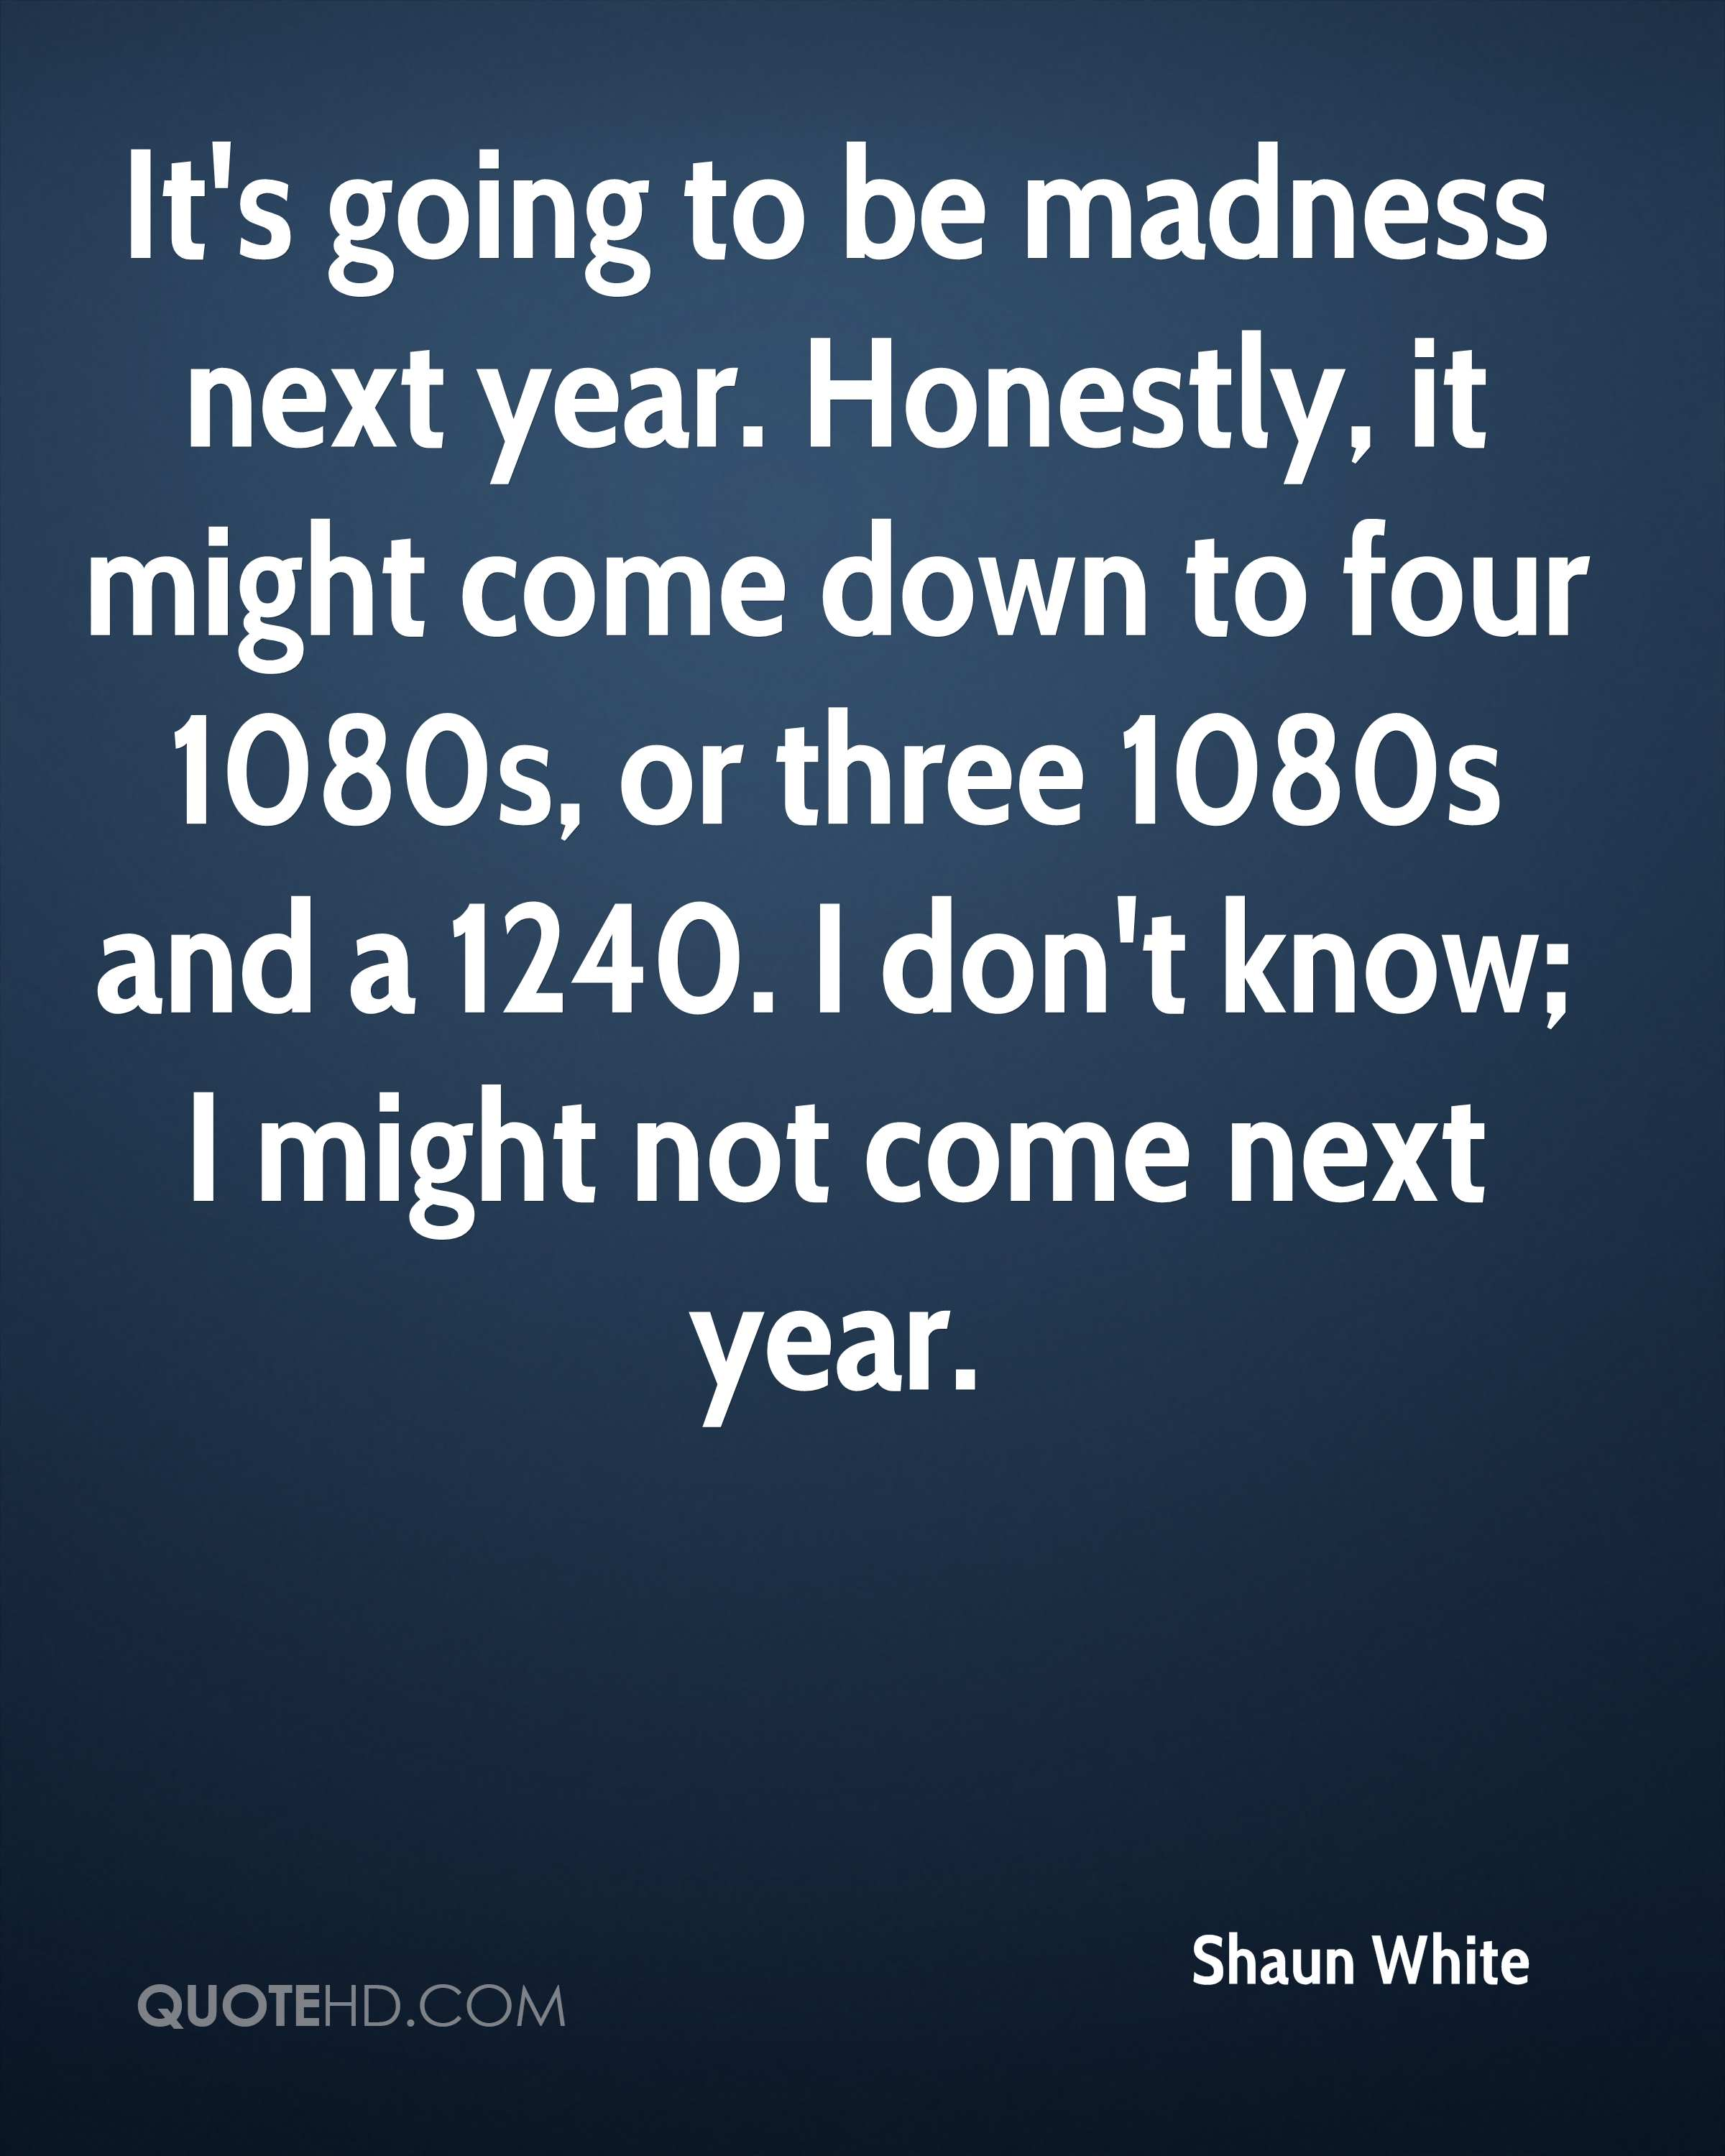 It's going to be madness next year. Honestly, it might come down to four 1080s, or three 1080s and a 1240. I don't know; I might not come next year.